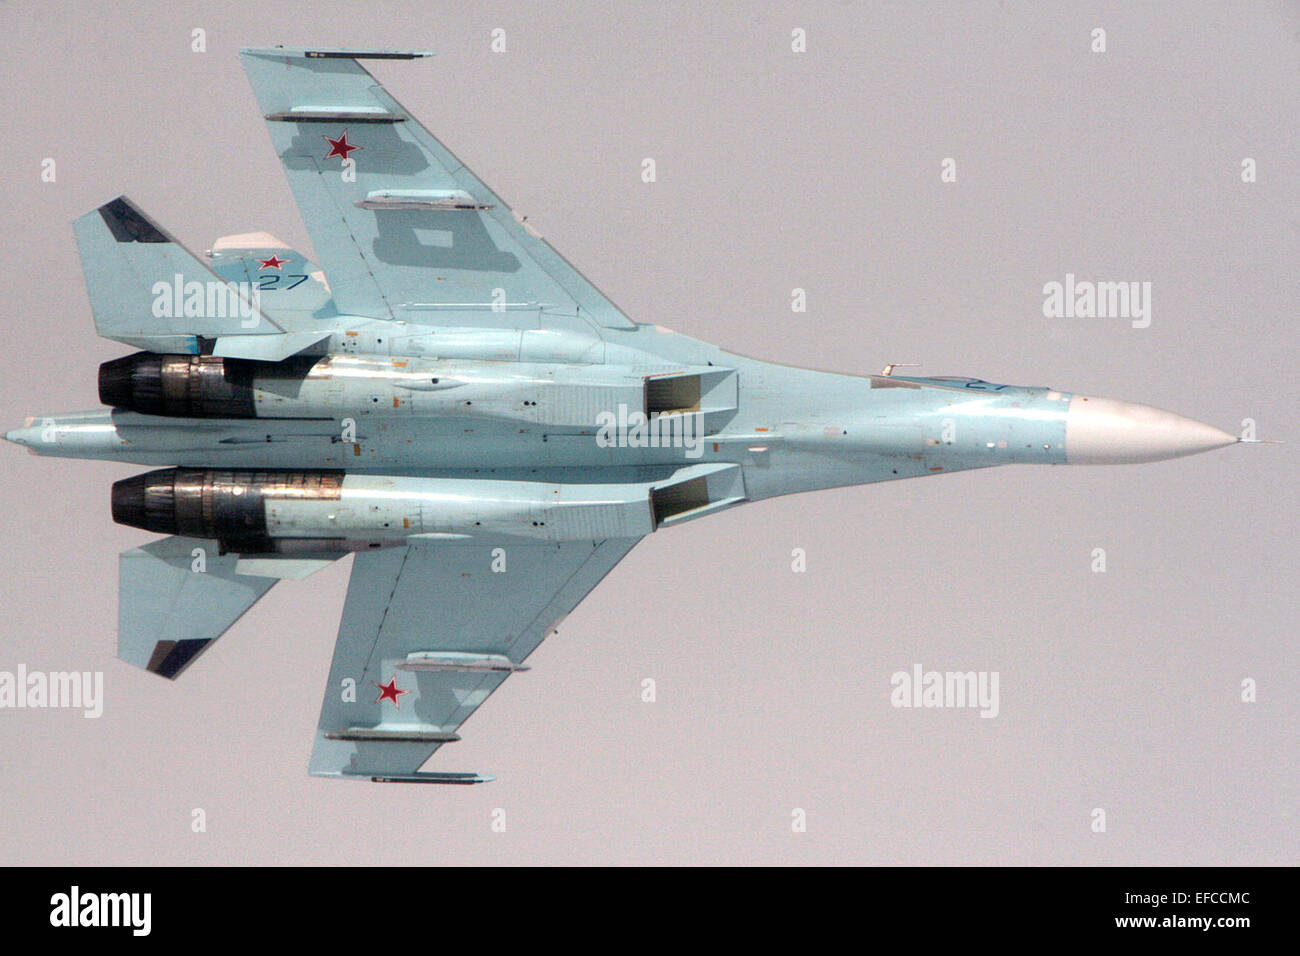 Russian Federation Air Force Su-27 Sukhoi fighter aircraft banks during an intercept of a simulated hijacked aircraft - Stock Image